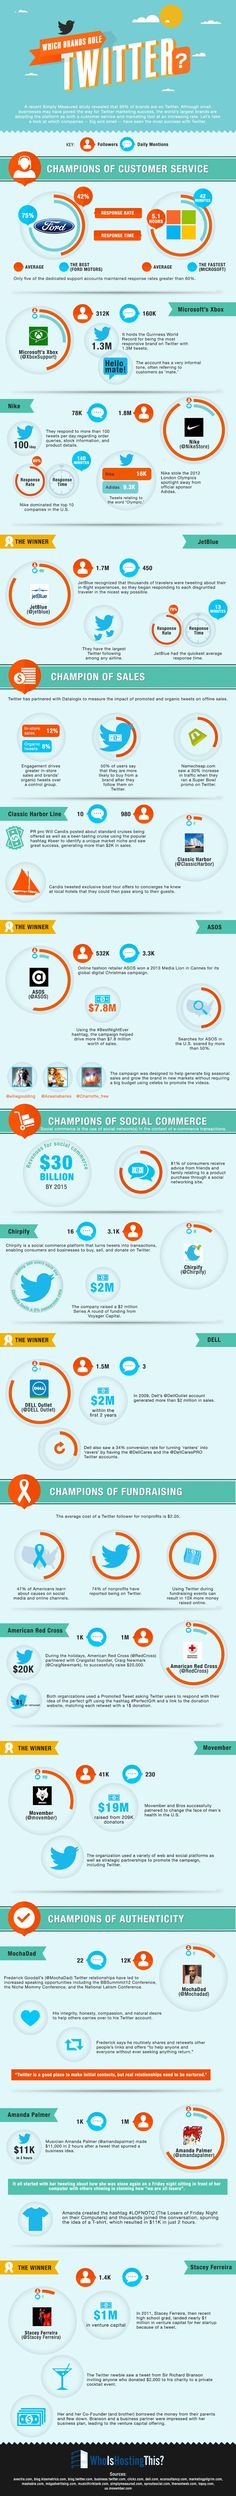 Which Brands Rule #Twitter - #infographic #socialmedia